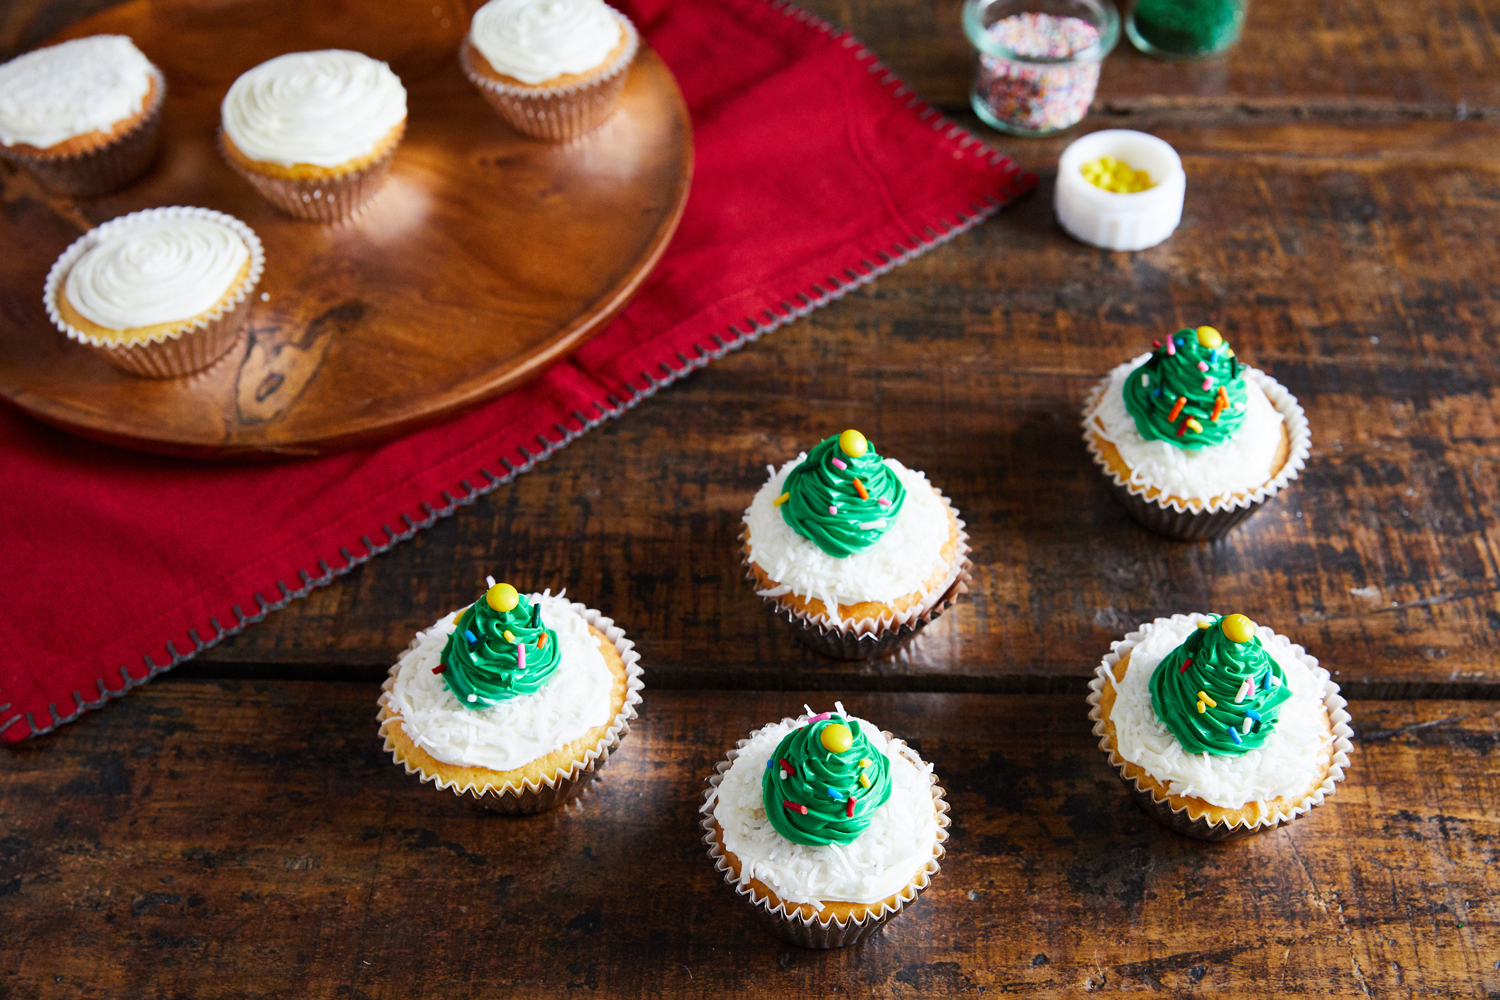 vanilla cupcakes with green piped trees